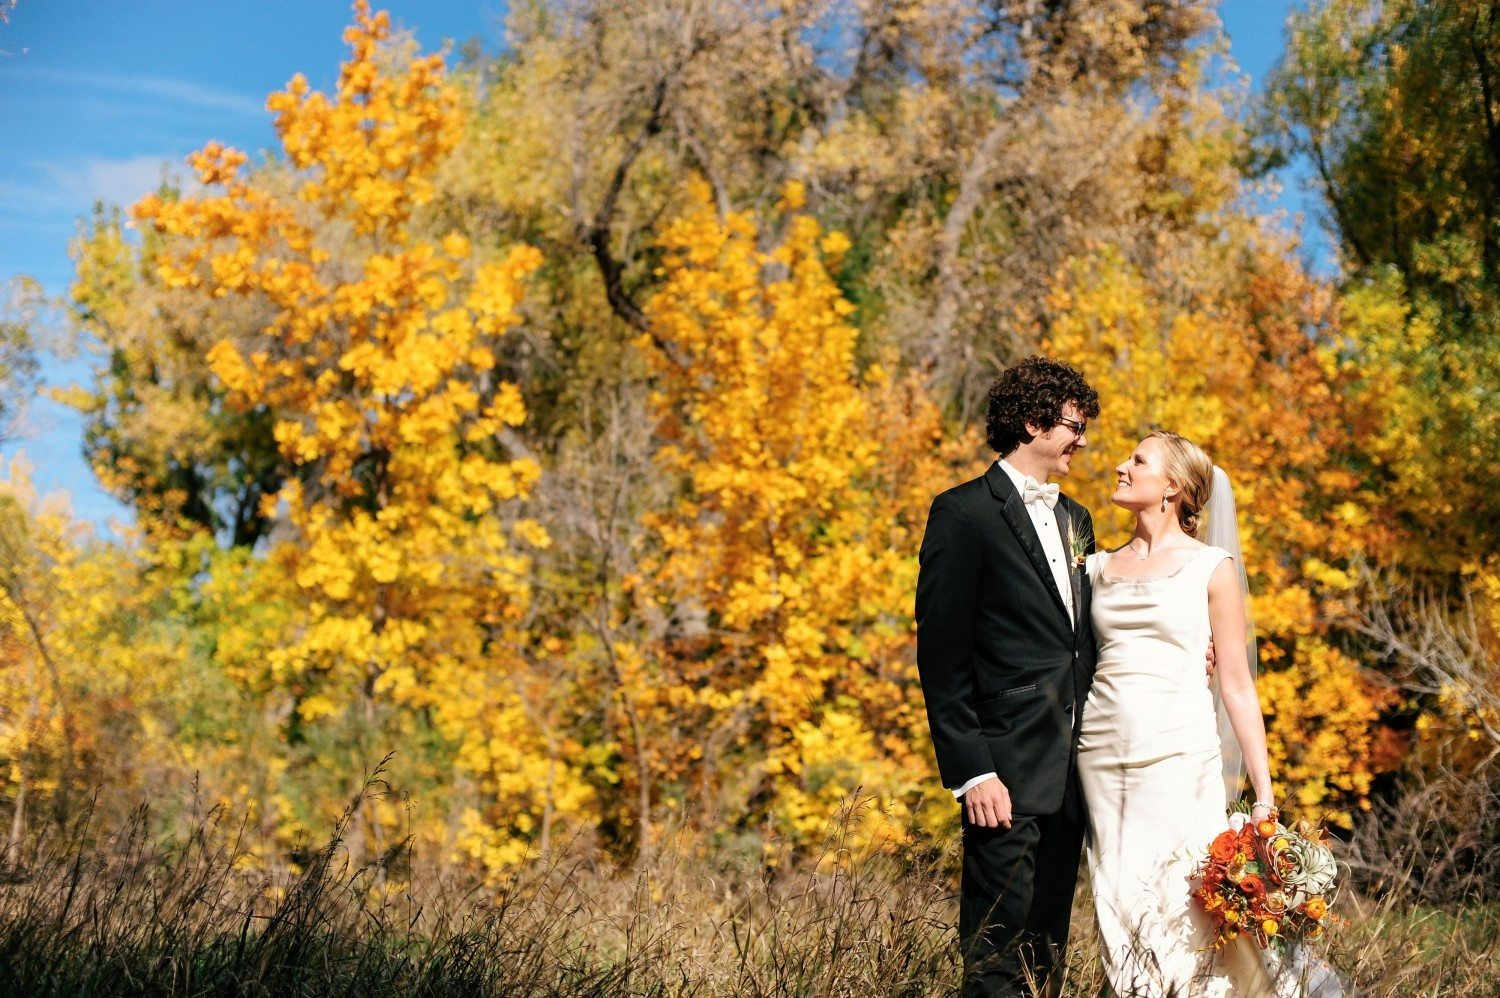 View More: http://kjandrob.pass.us/juliet-steve-wedding